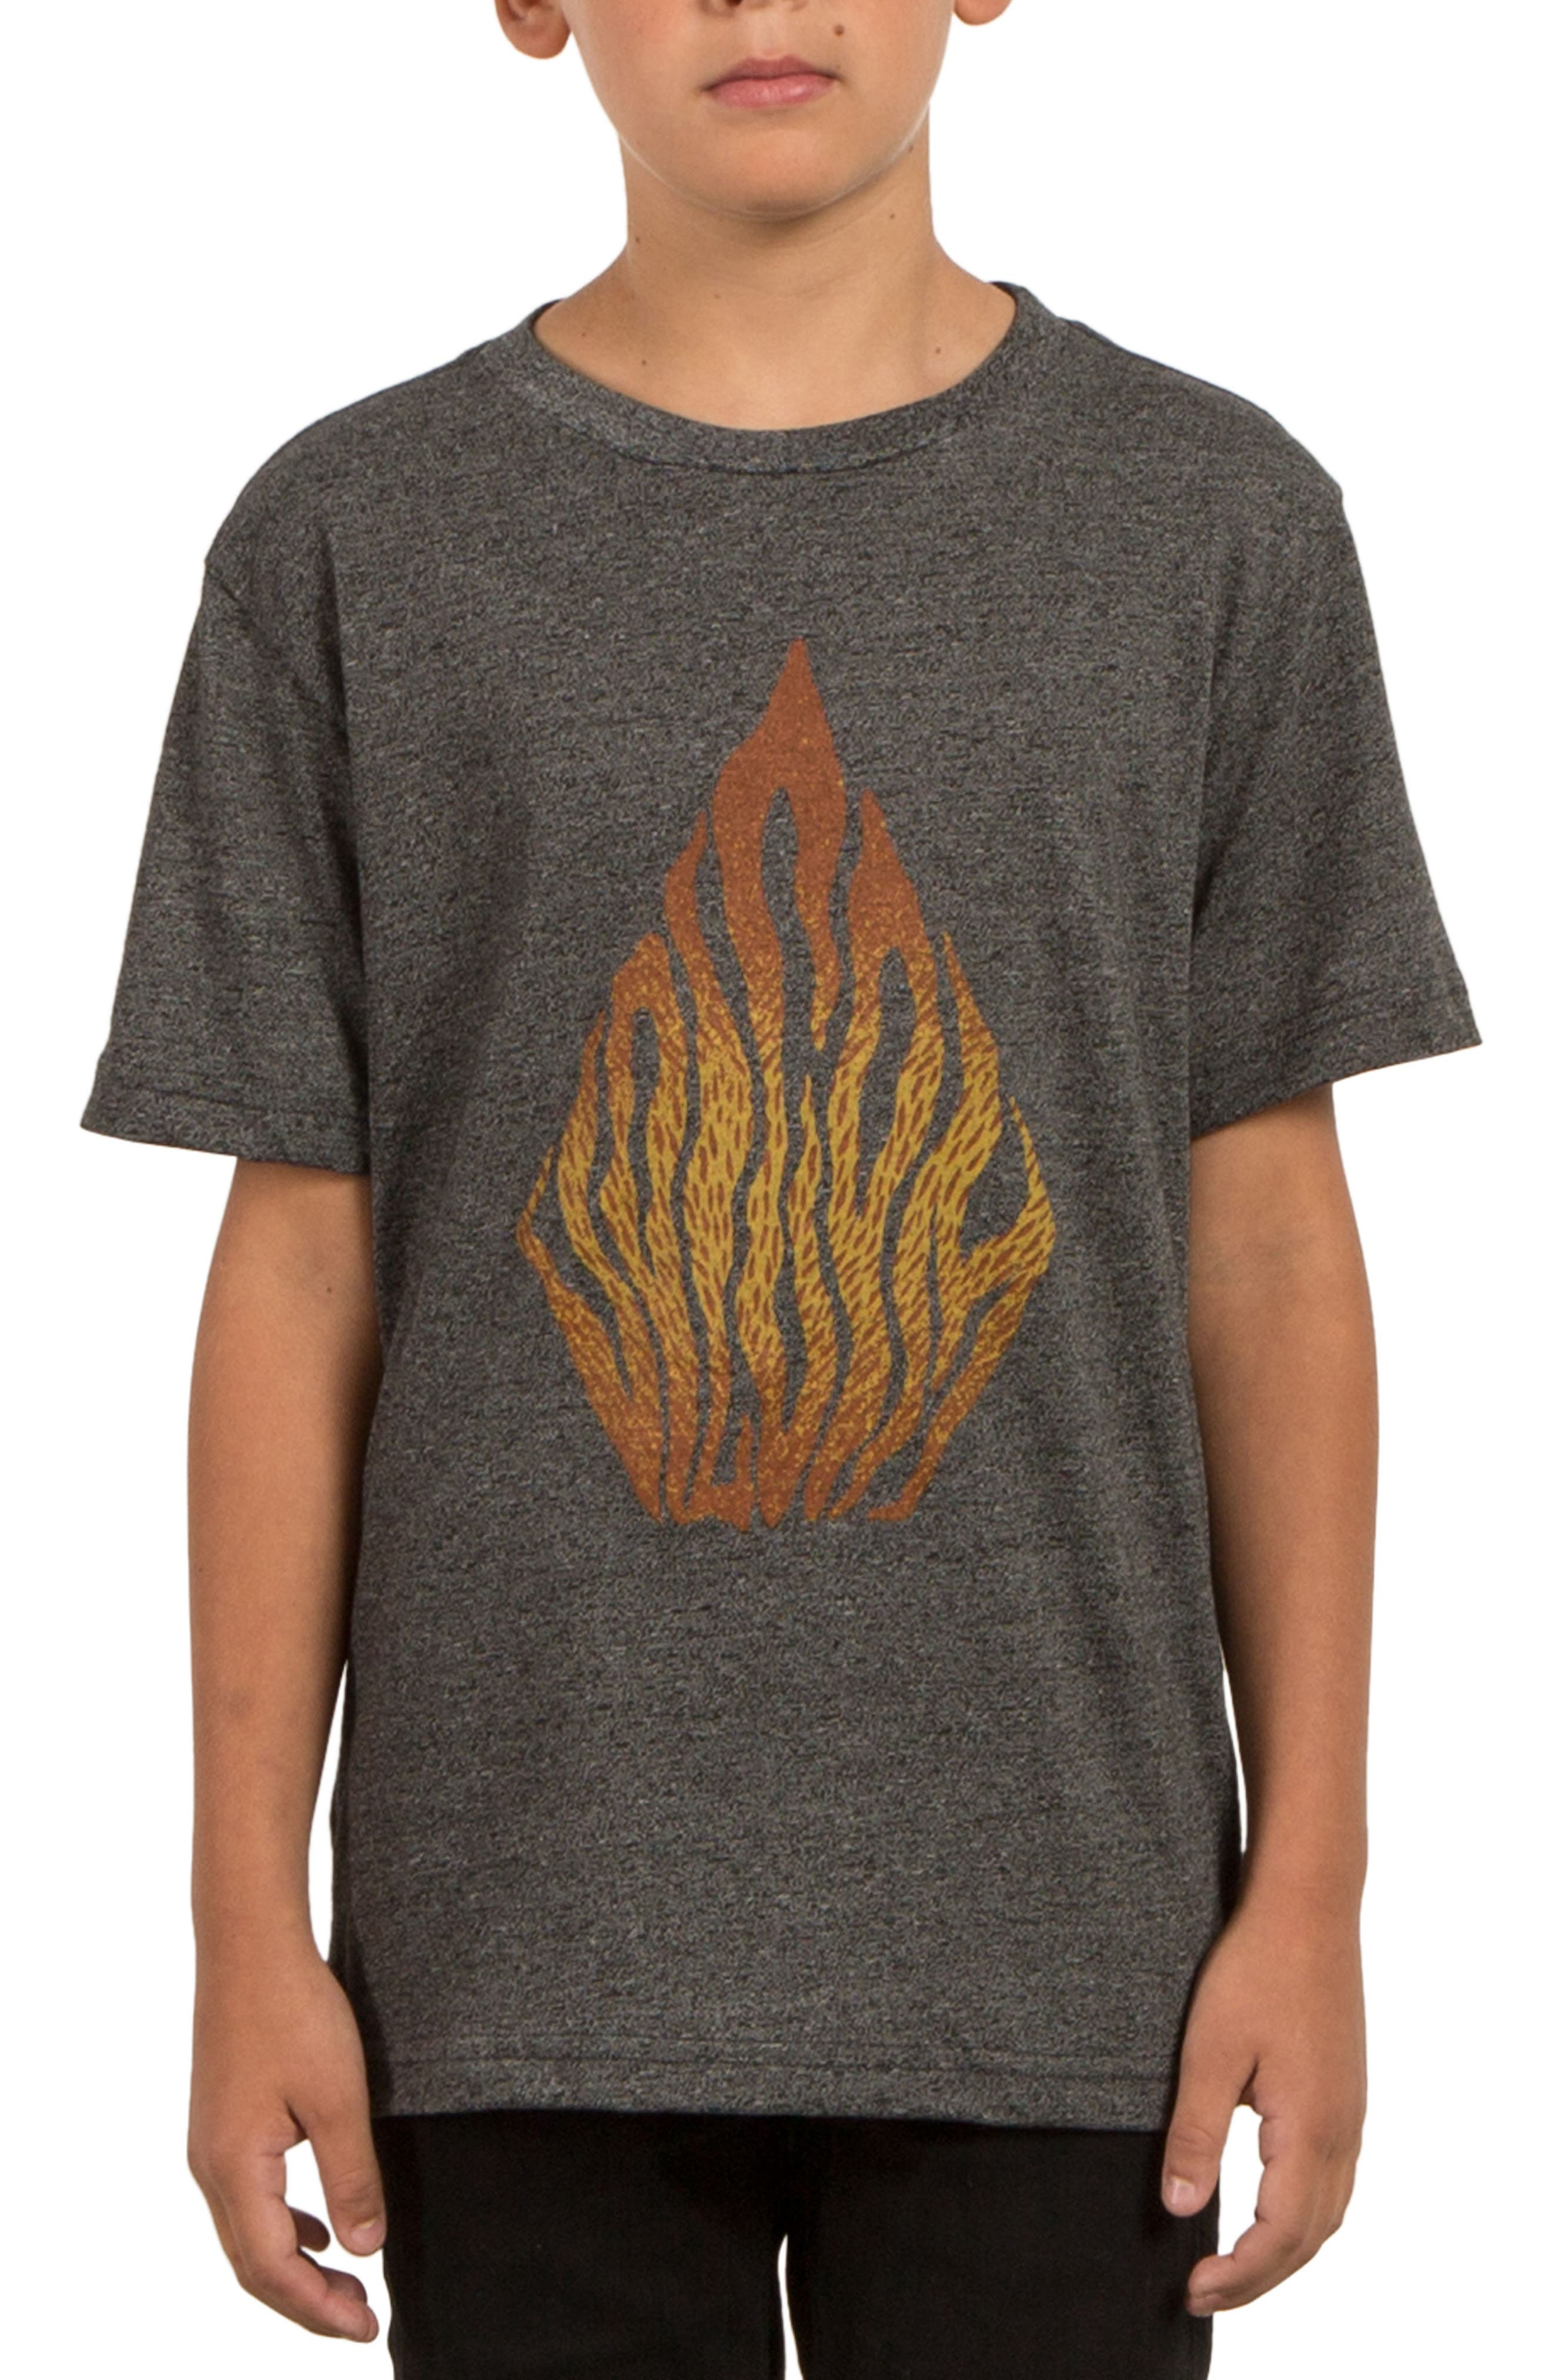 Alternate Image 1 Selected - Volcom Blooms Day Graphic T-Shirt (Big Boys)